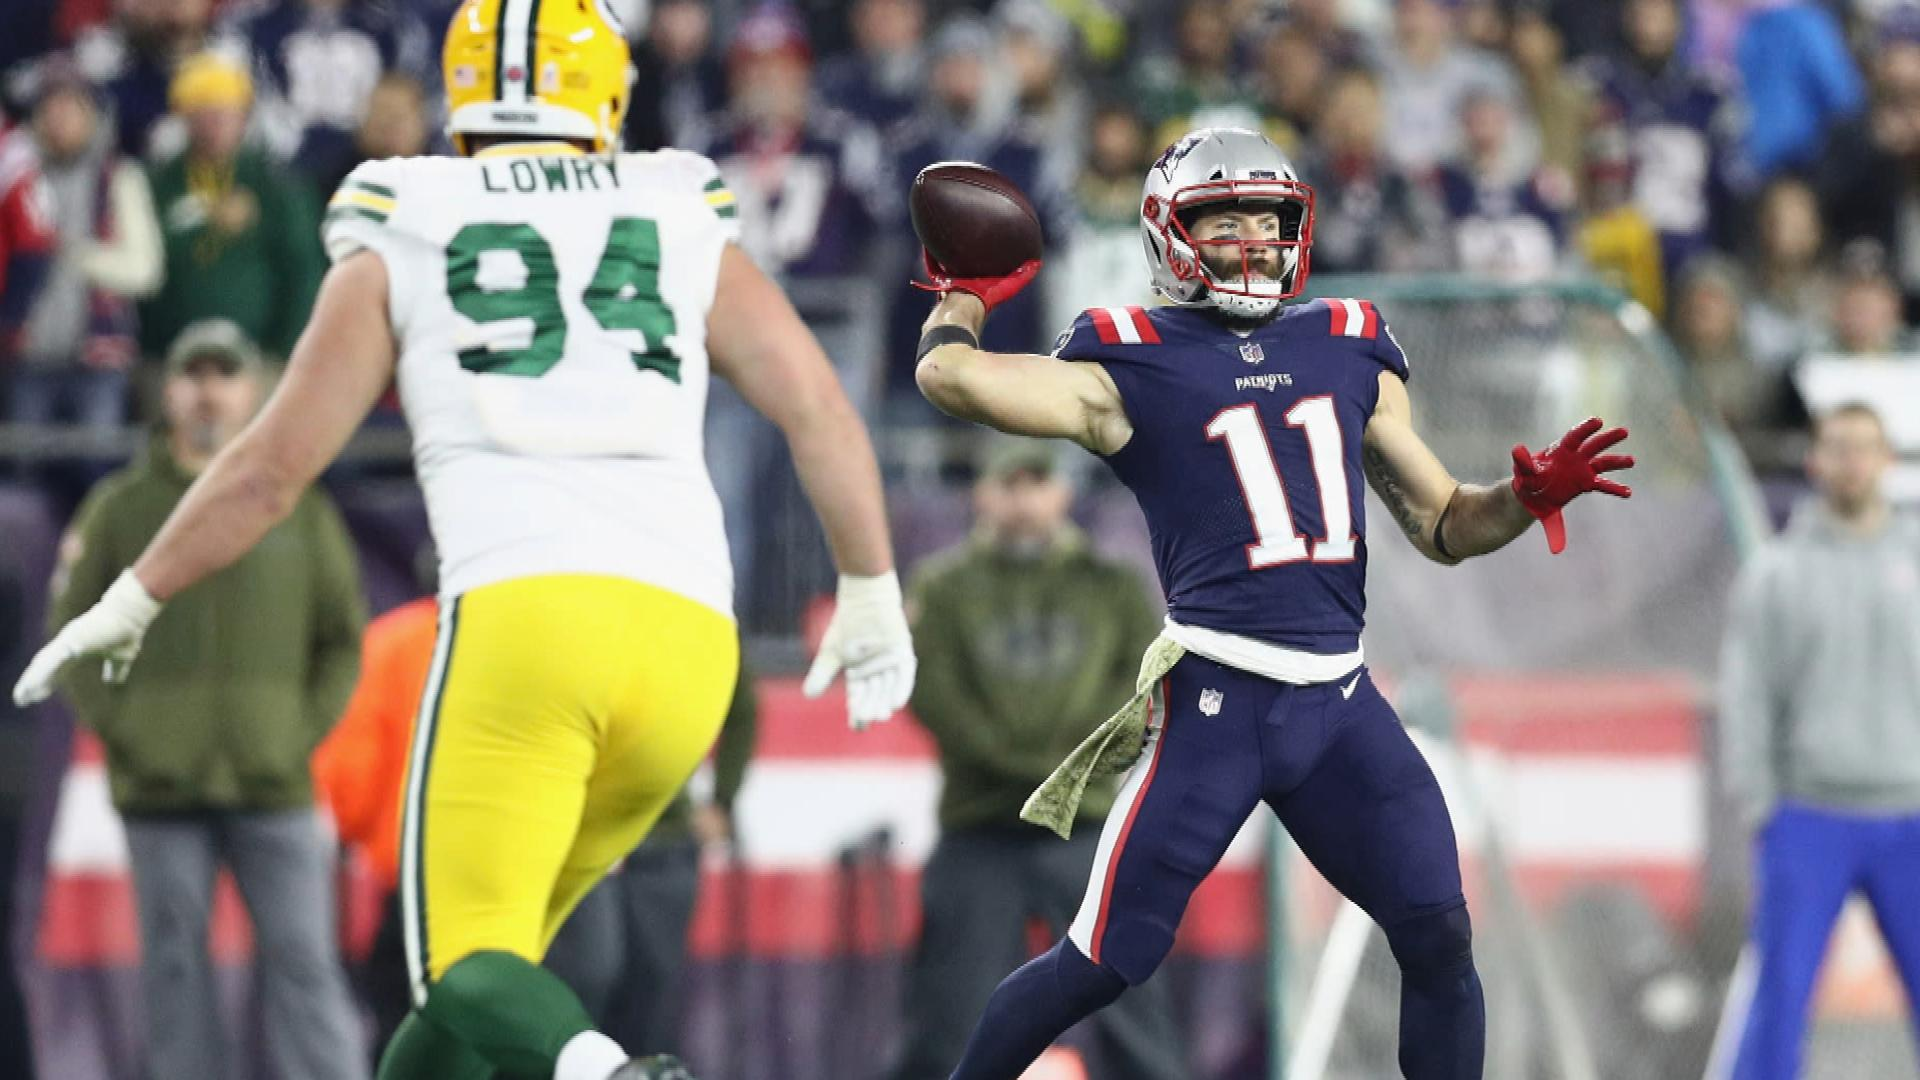 Rest of NFL needs to catch up on trick plays, Chris Simms says